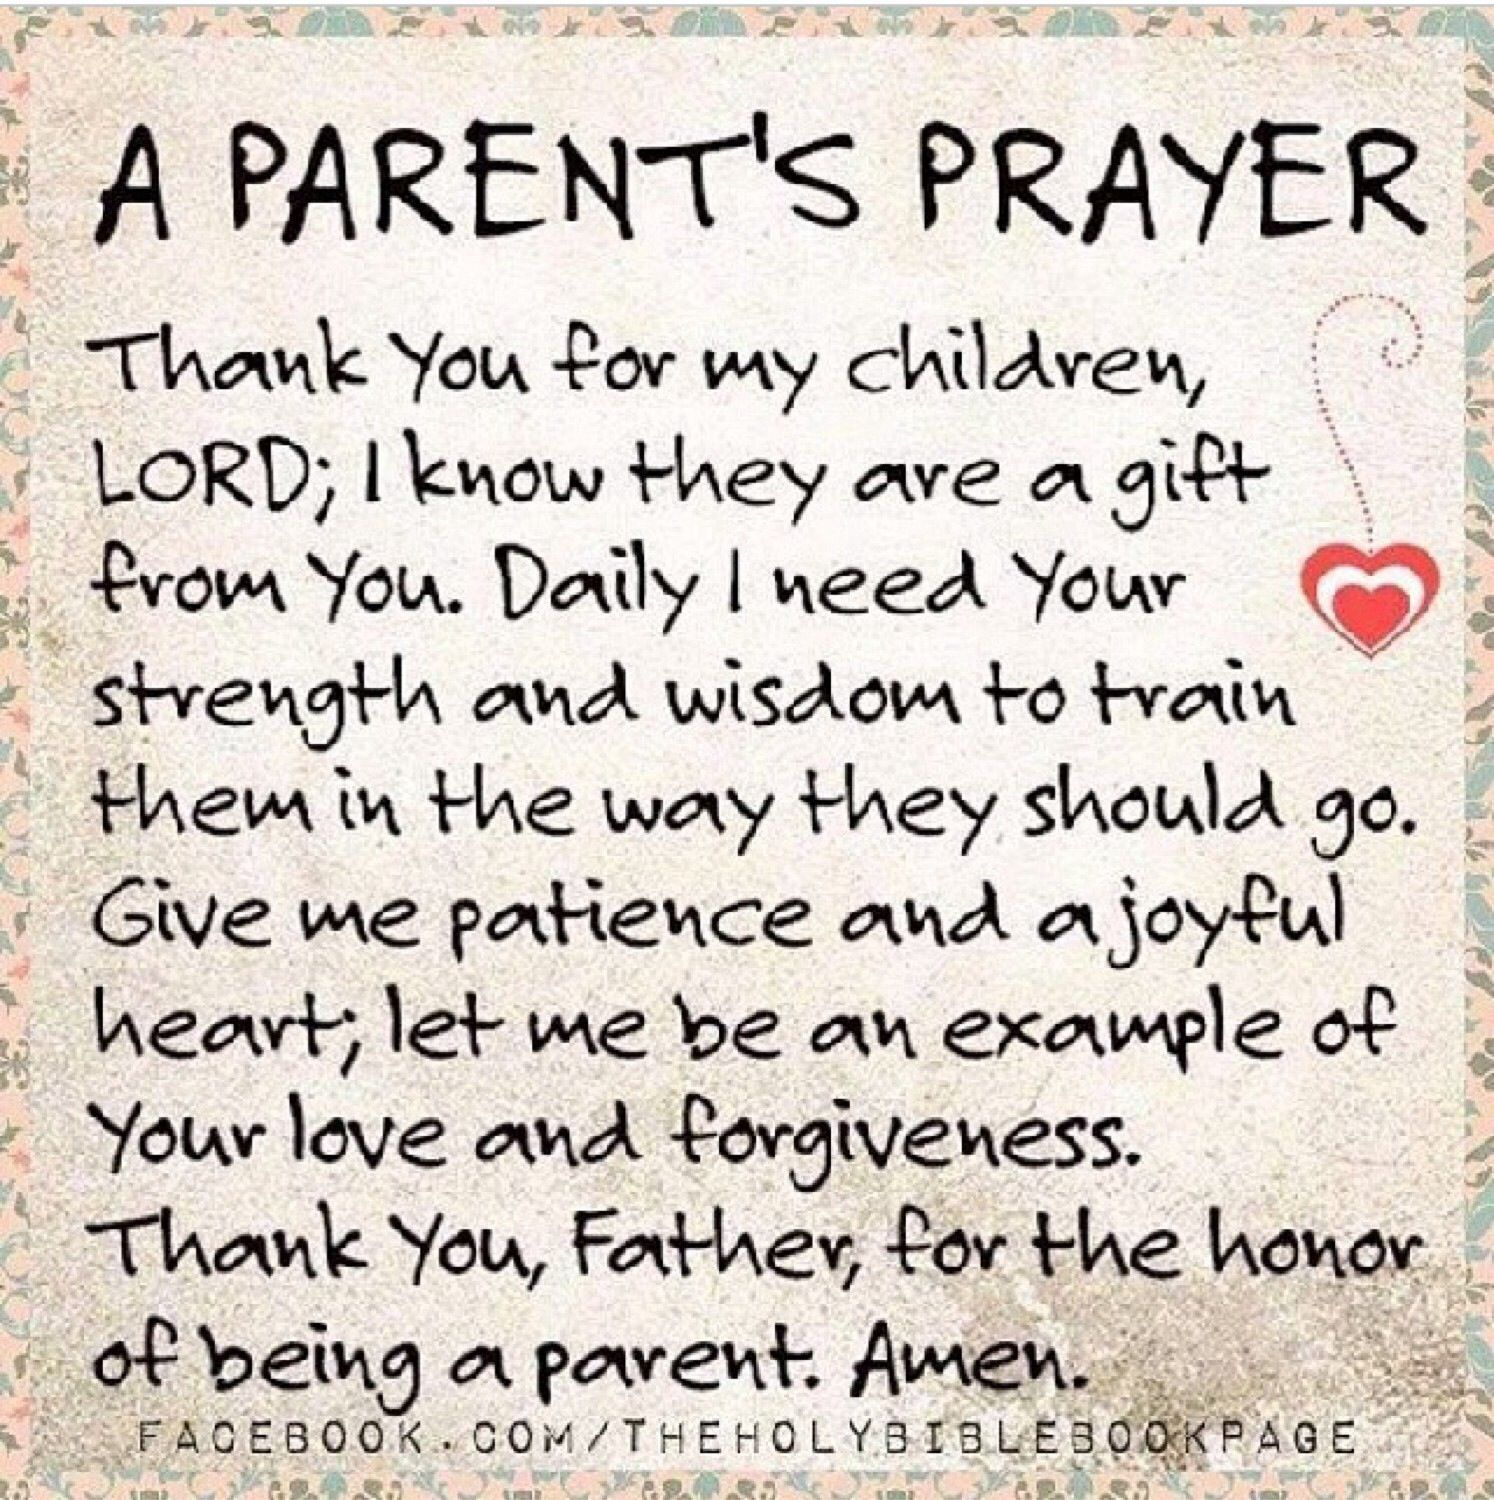 Prayer Request Quotes Pingracie Ledesma On Prayers And Inspirational Quotes